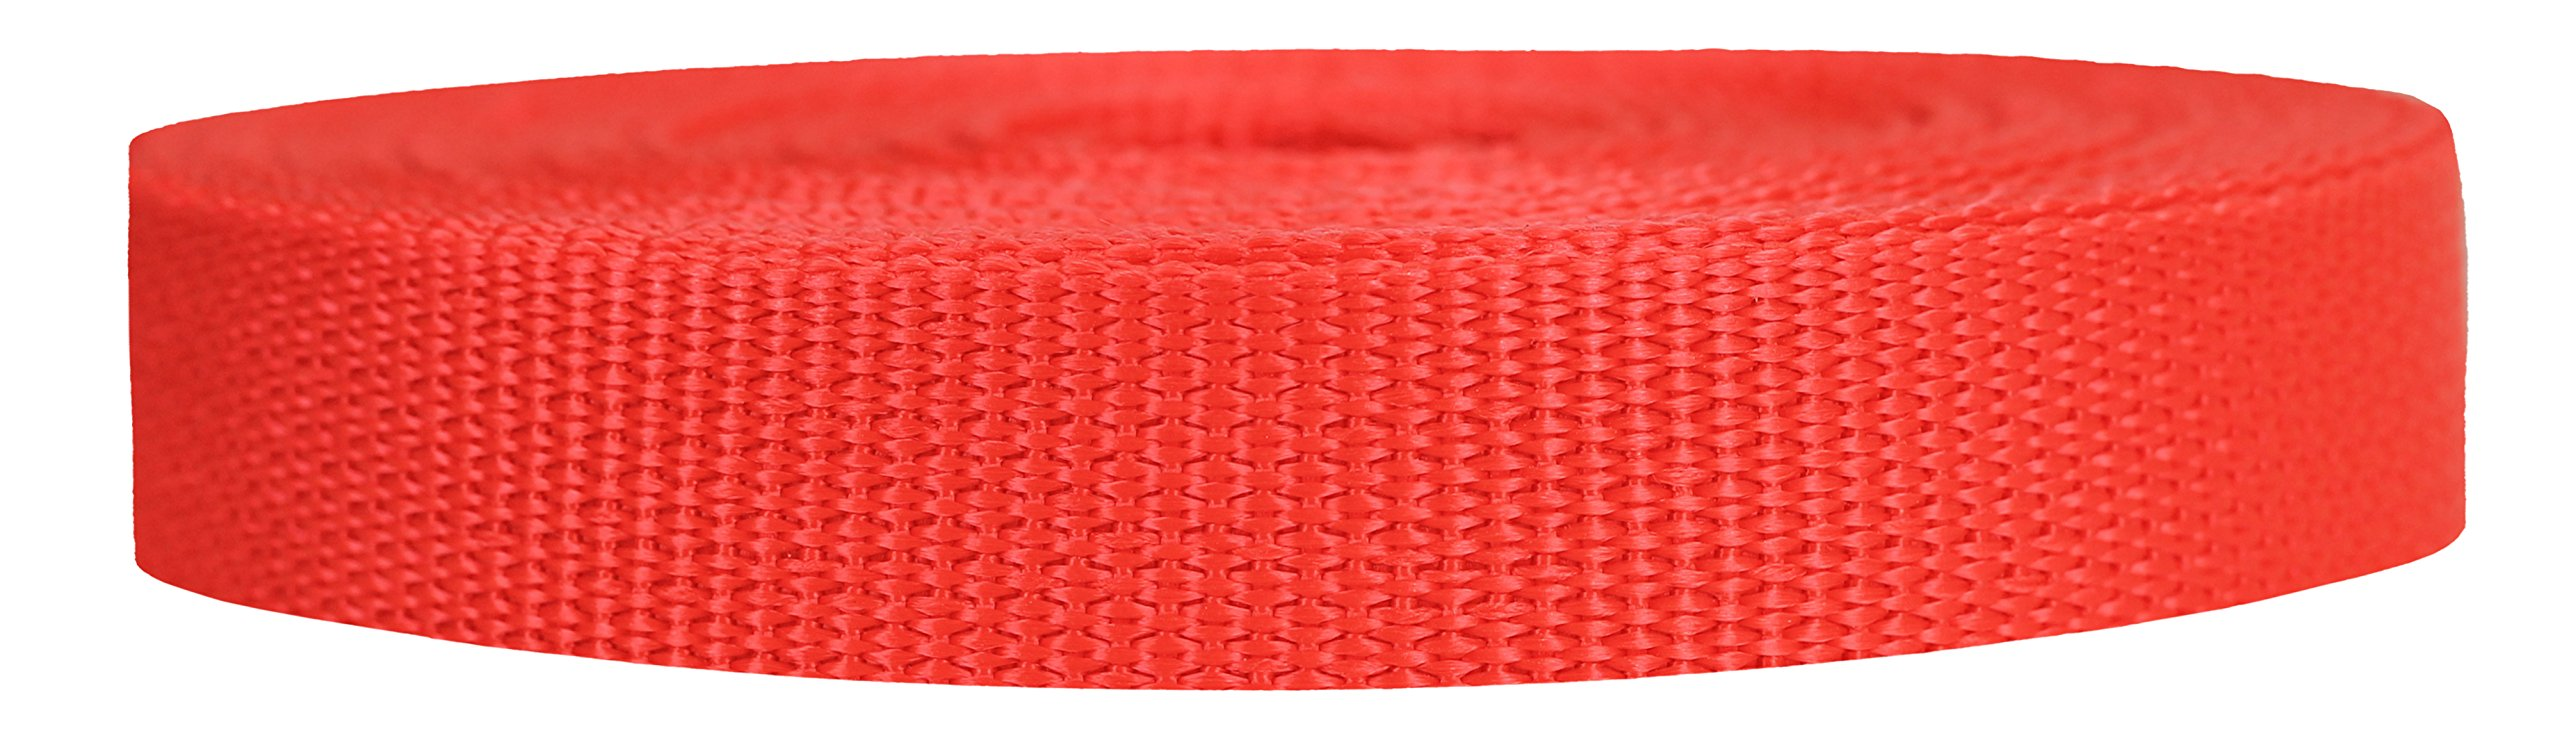 Strapworks Lightweight Polypropylene Webbing - Poly Strapping for Outdoor DIY Gear Repair, Pet Collars, Crafts - 3/4 Inch by 10, 25, or 50 Yards, Over 20 Colors by Strapworks